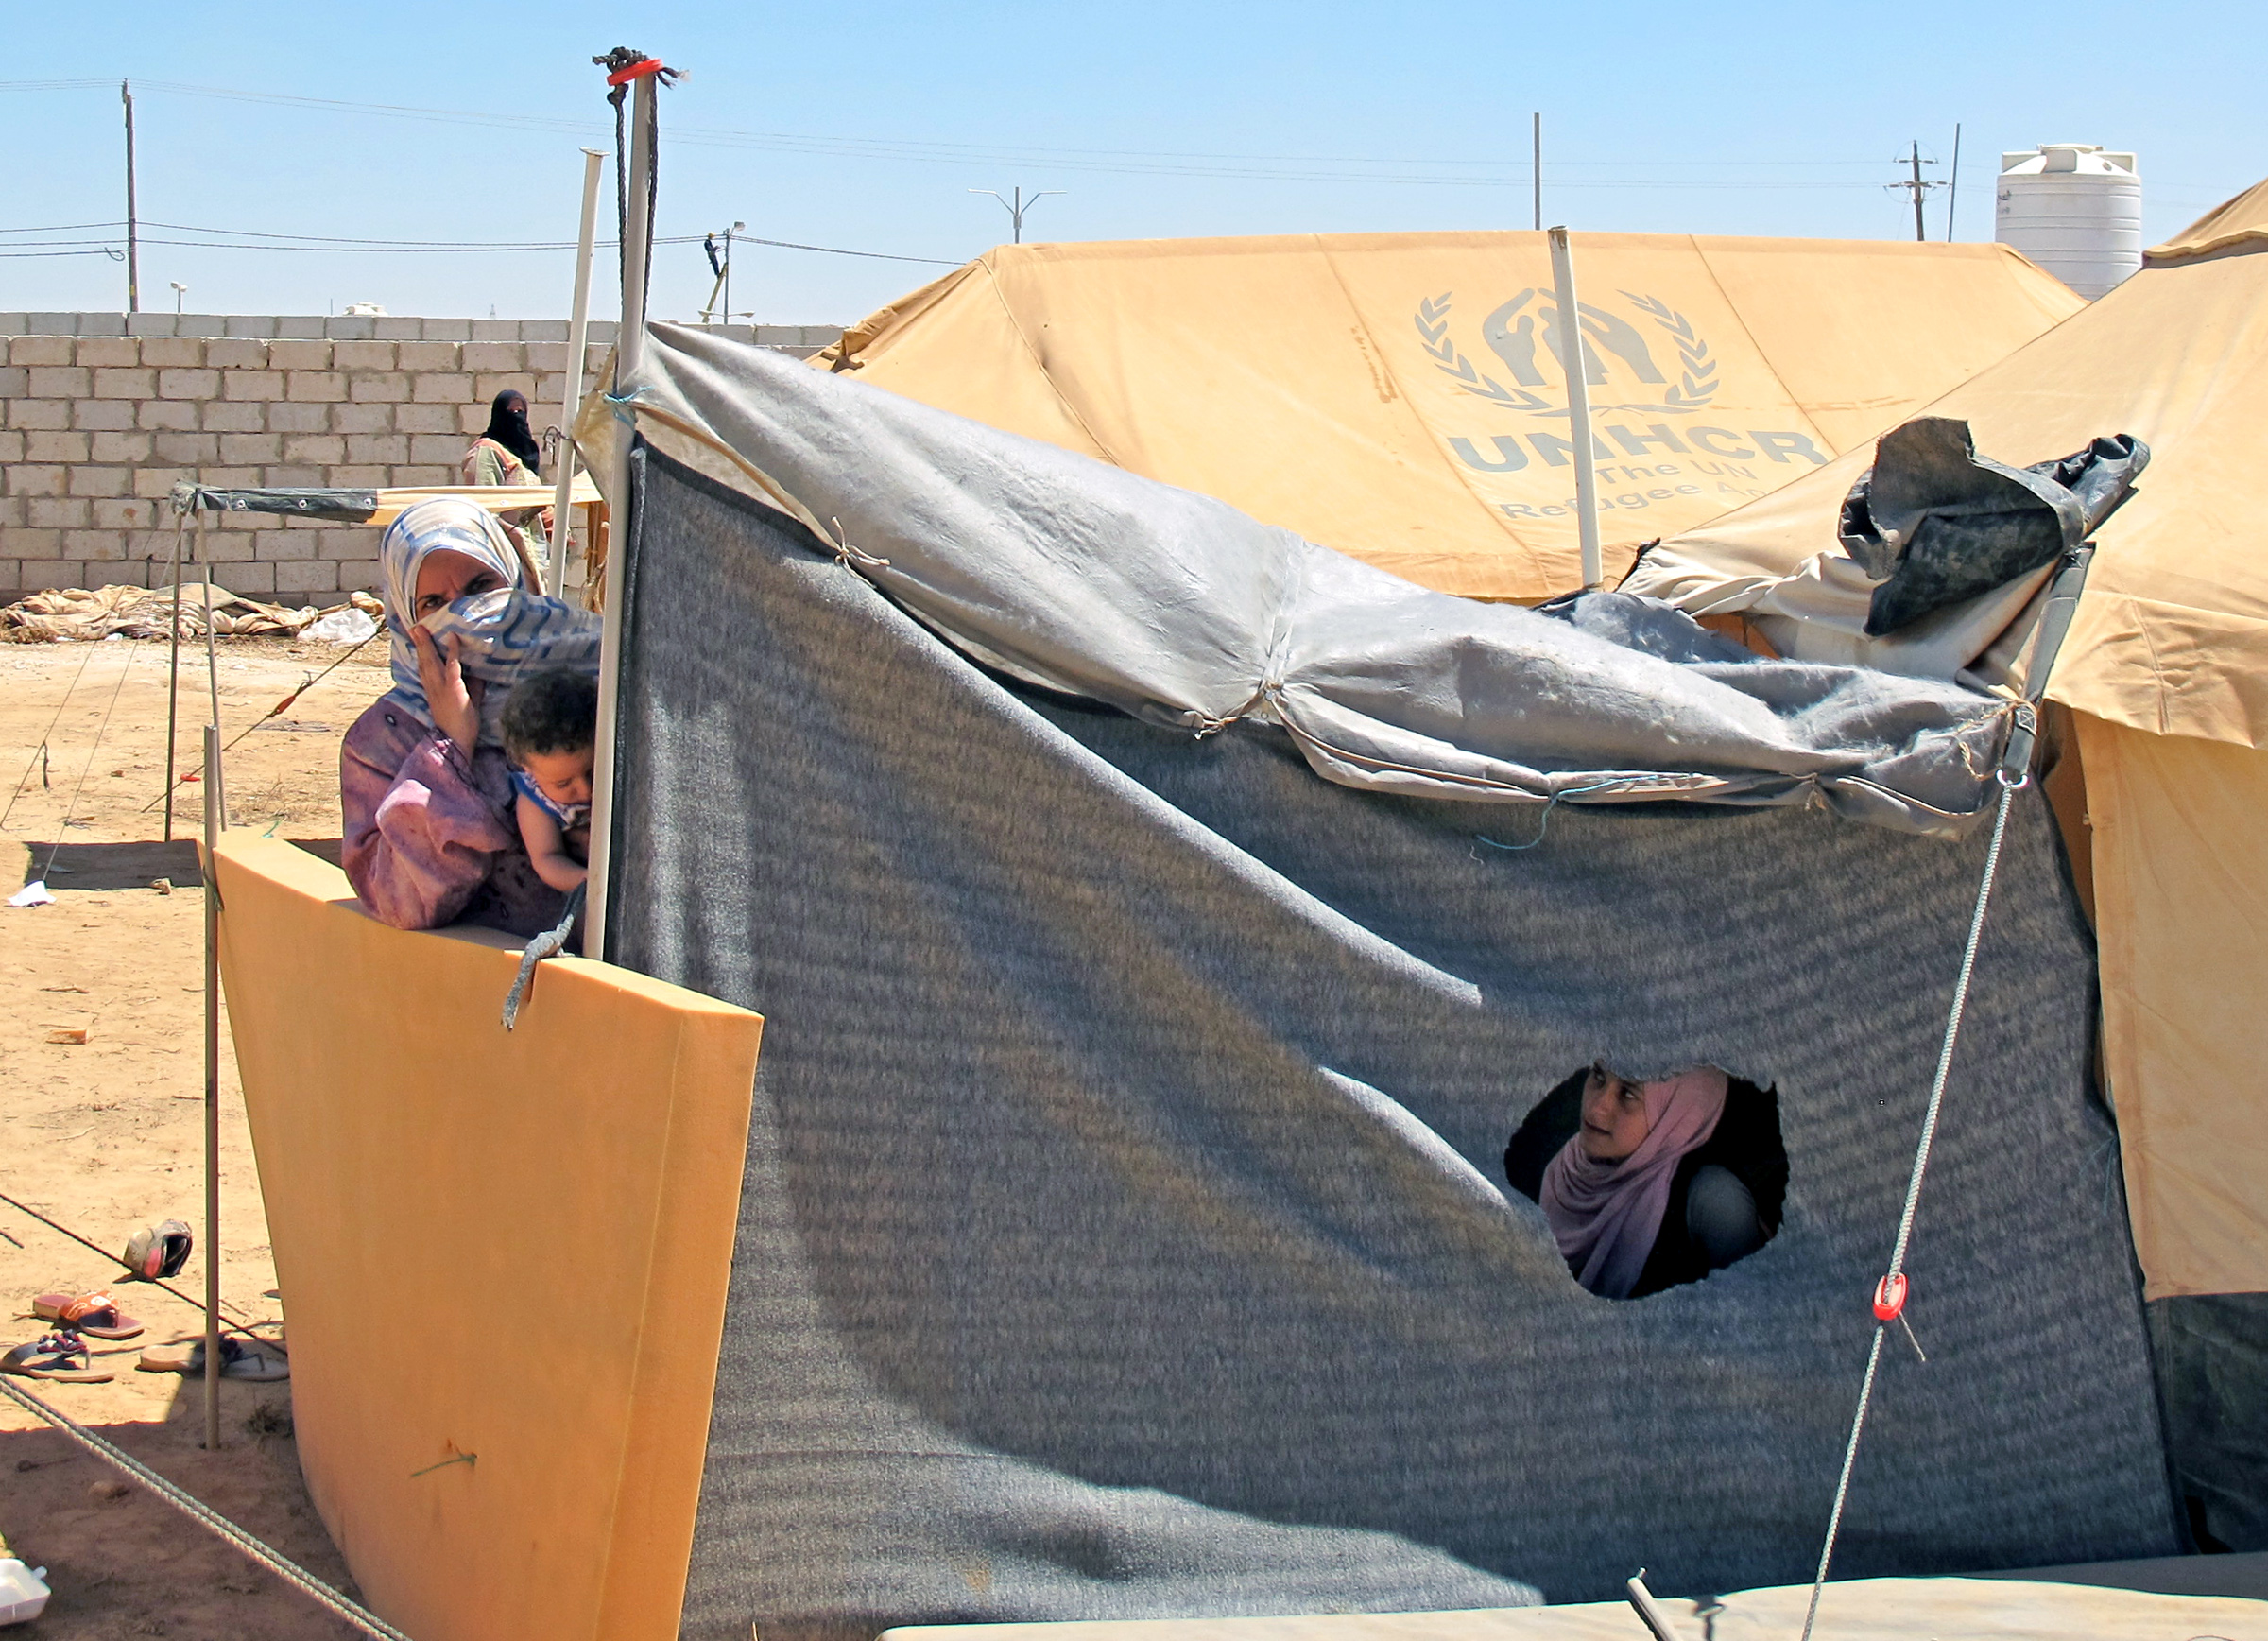 Syrian families have found shelter at Zaatari Camp in Jordan